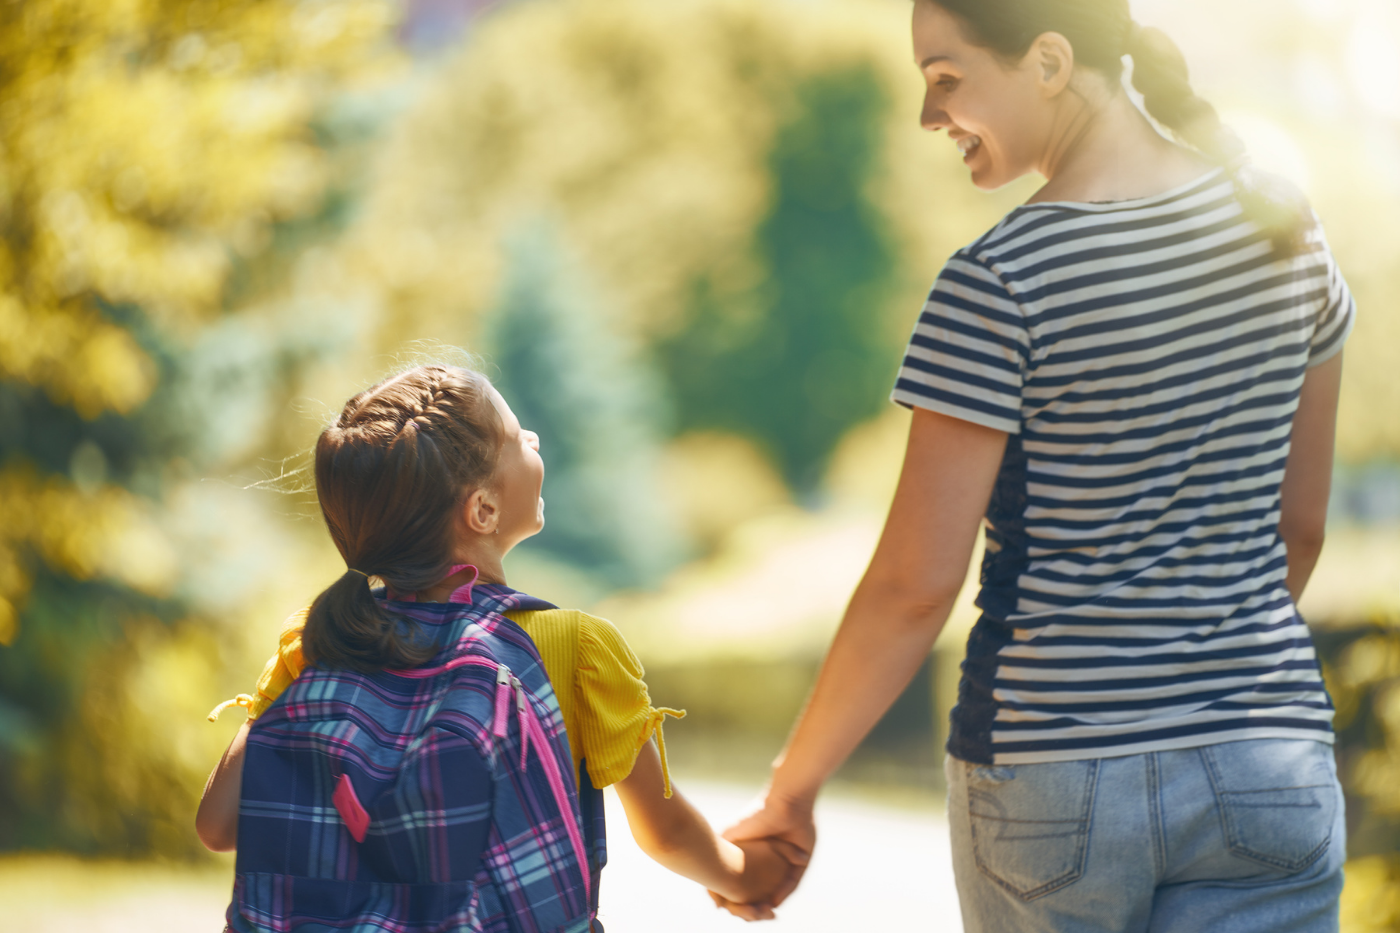 WHAT TYPES OF CUSTODY PLANS ARE AVAILABLE IN MISSOURI?